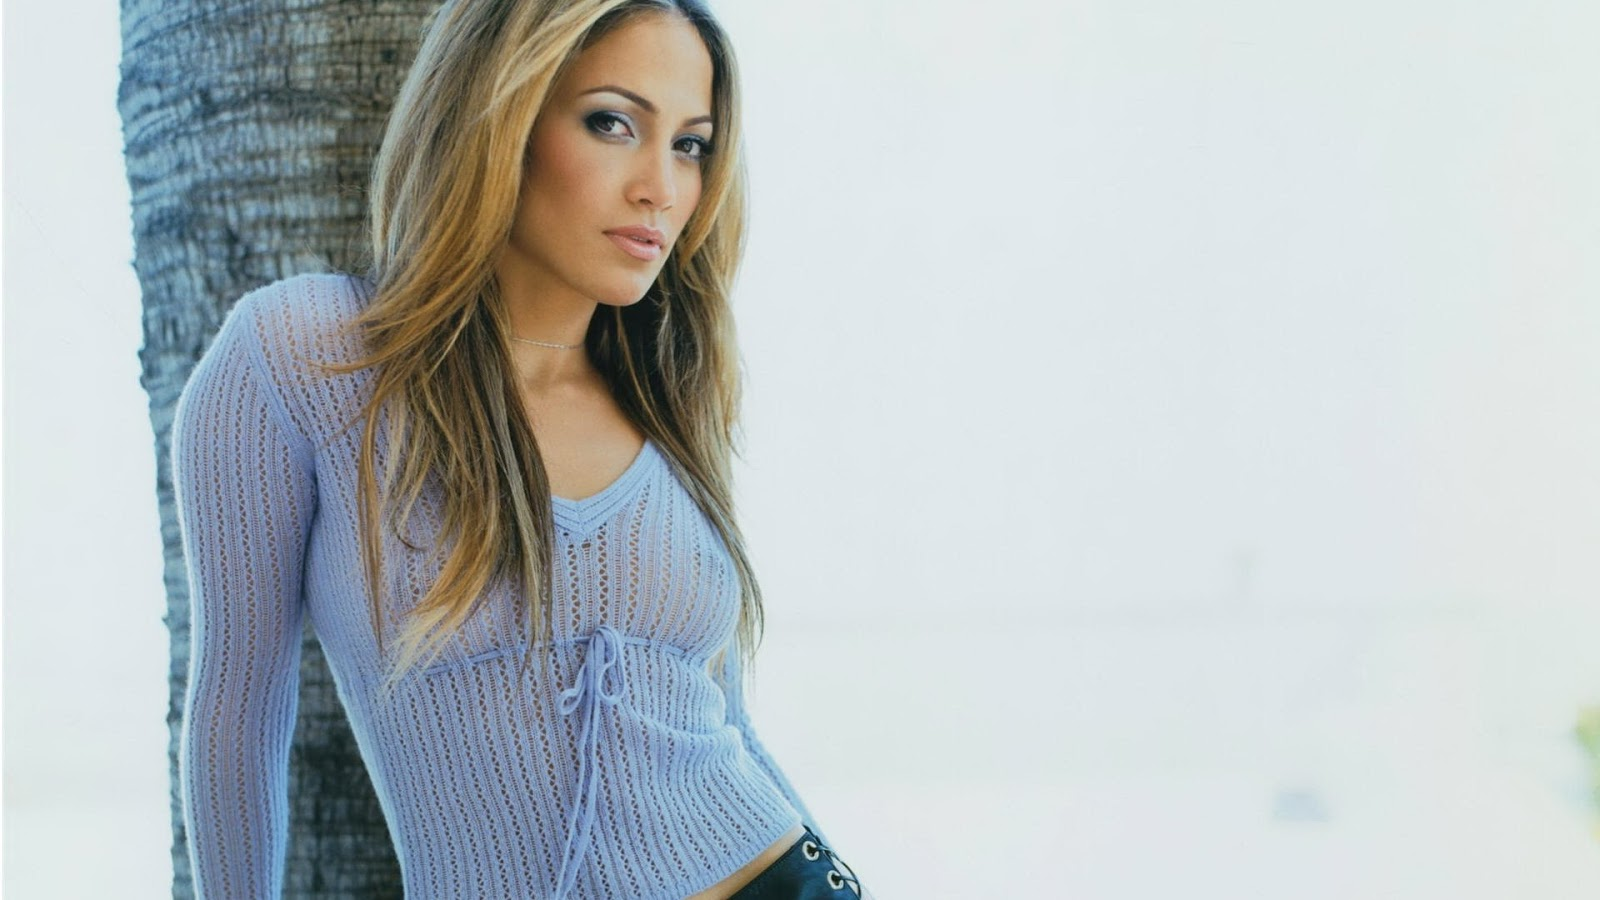 wallpapers jennifer lopez latest hot hd wallpapers 2013 jennifer lopez